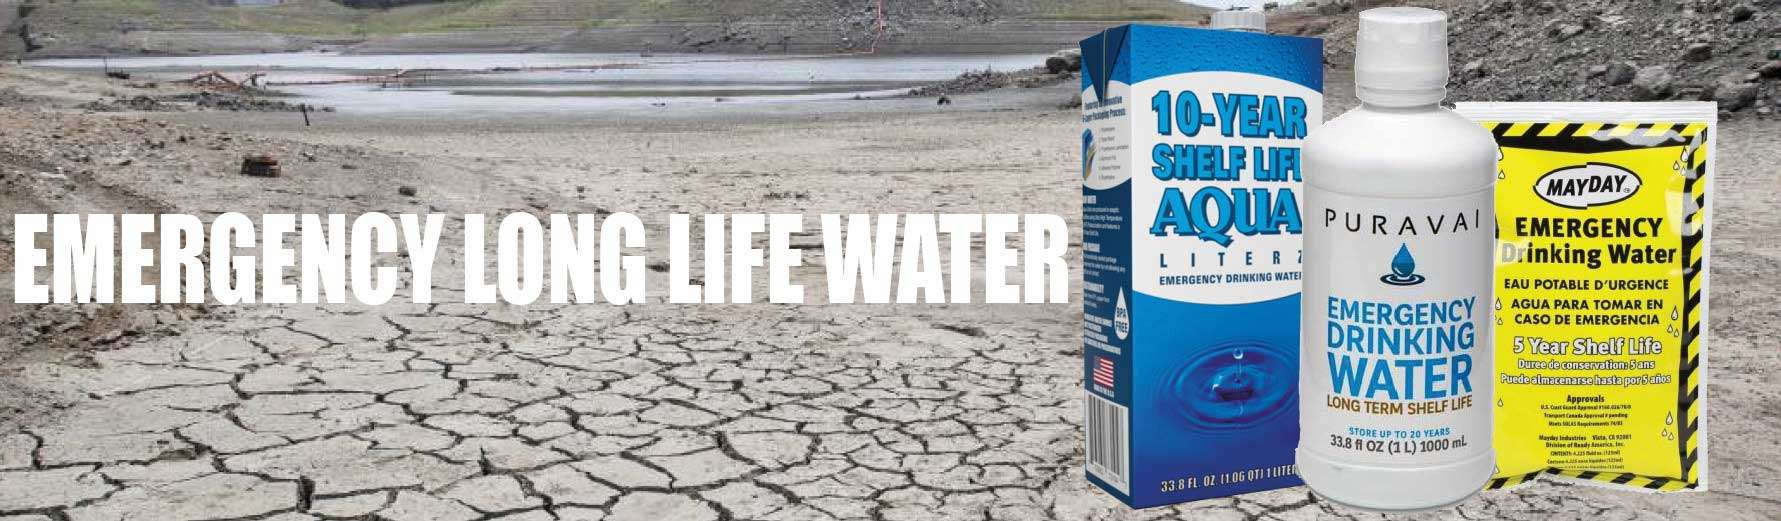 Emergency Long Life Water